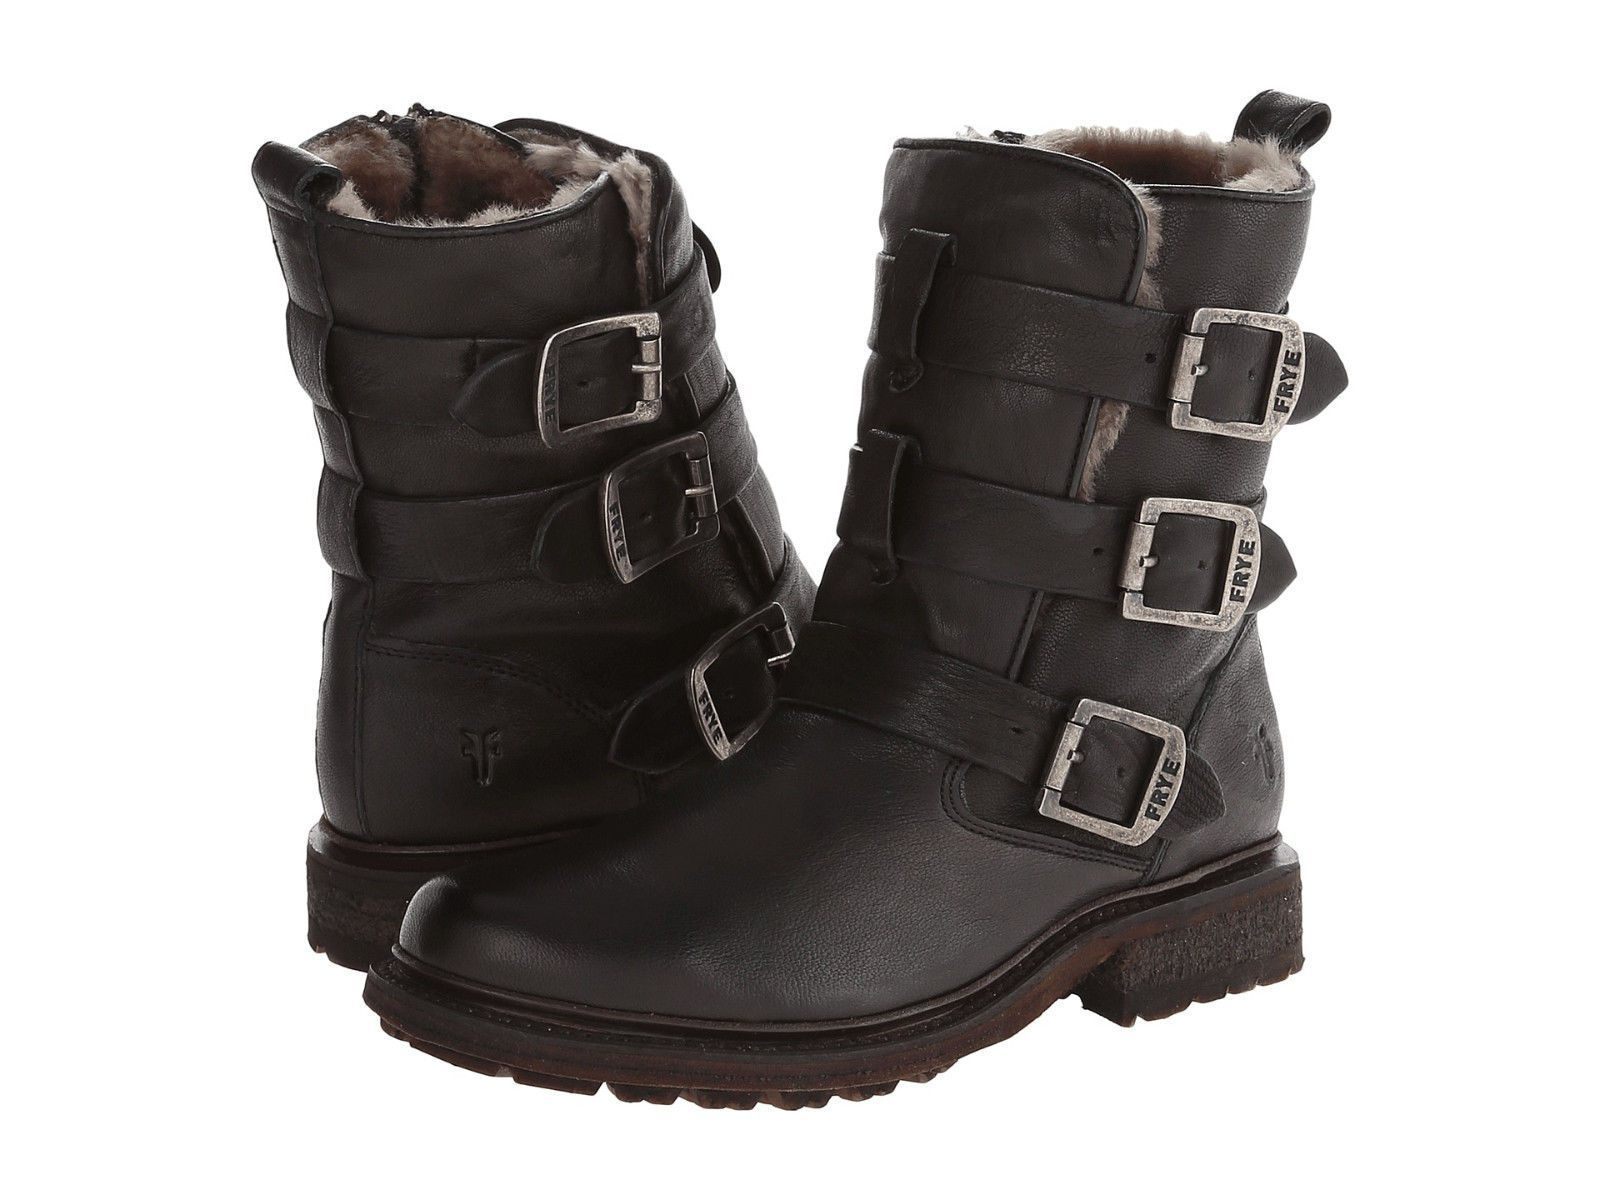 f2470fb0384 FRYE Womens Valerie Shearling Strappy Boots Black Vintage Leather ...